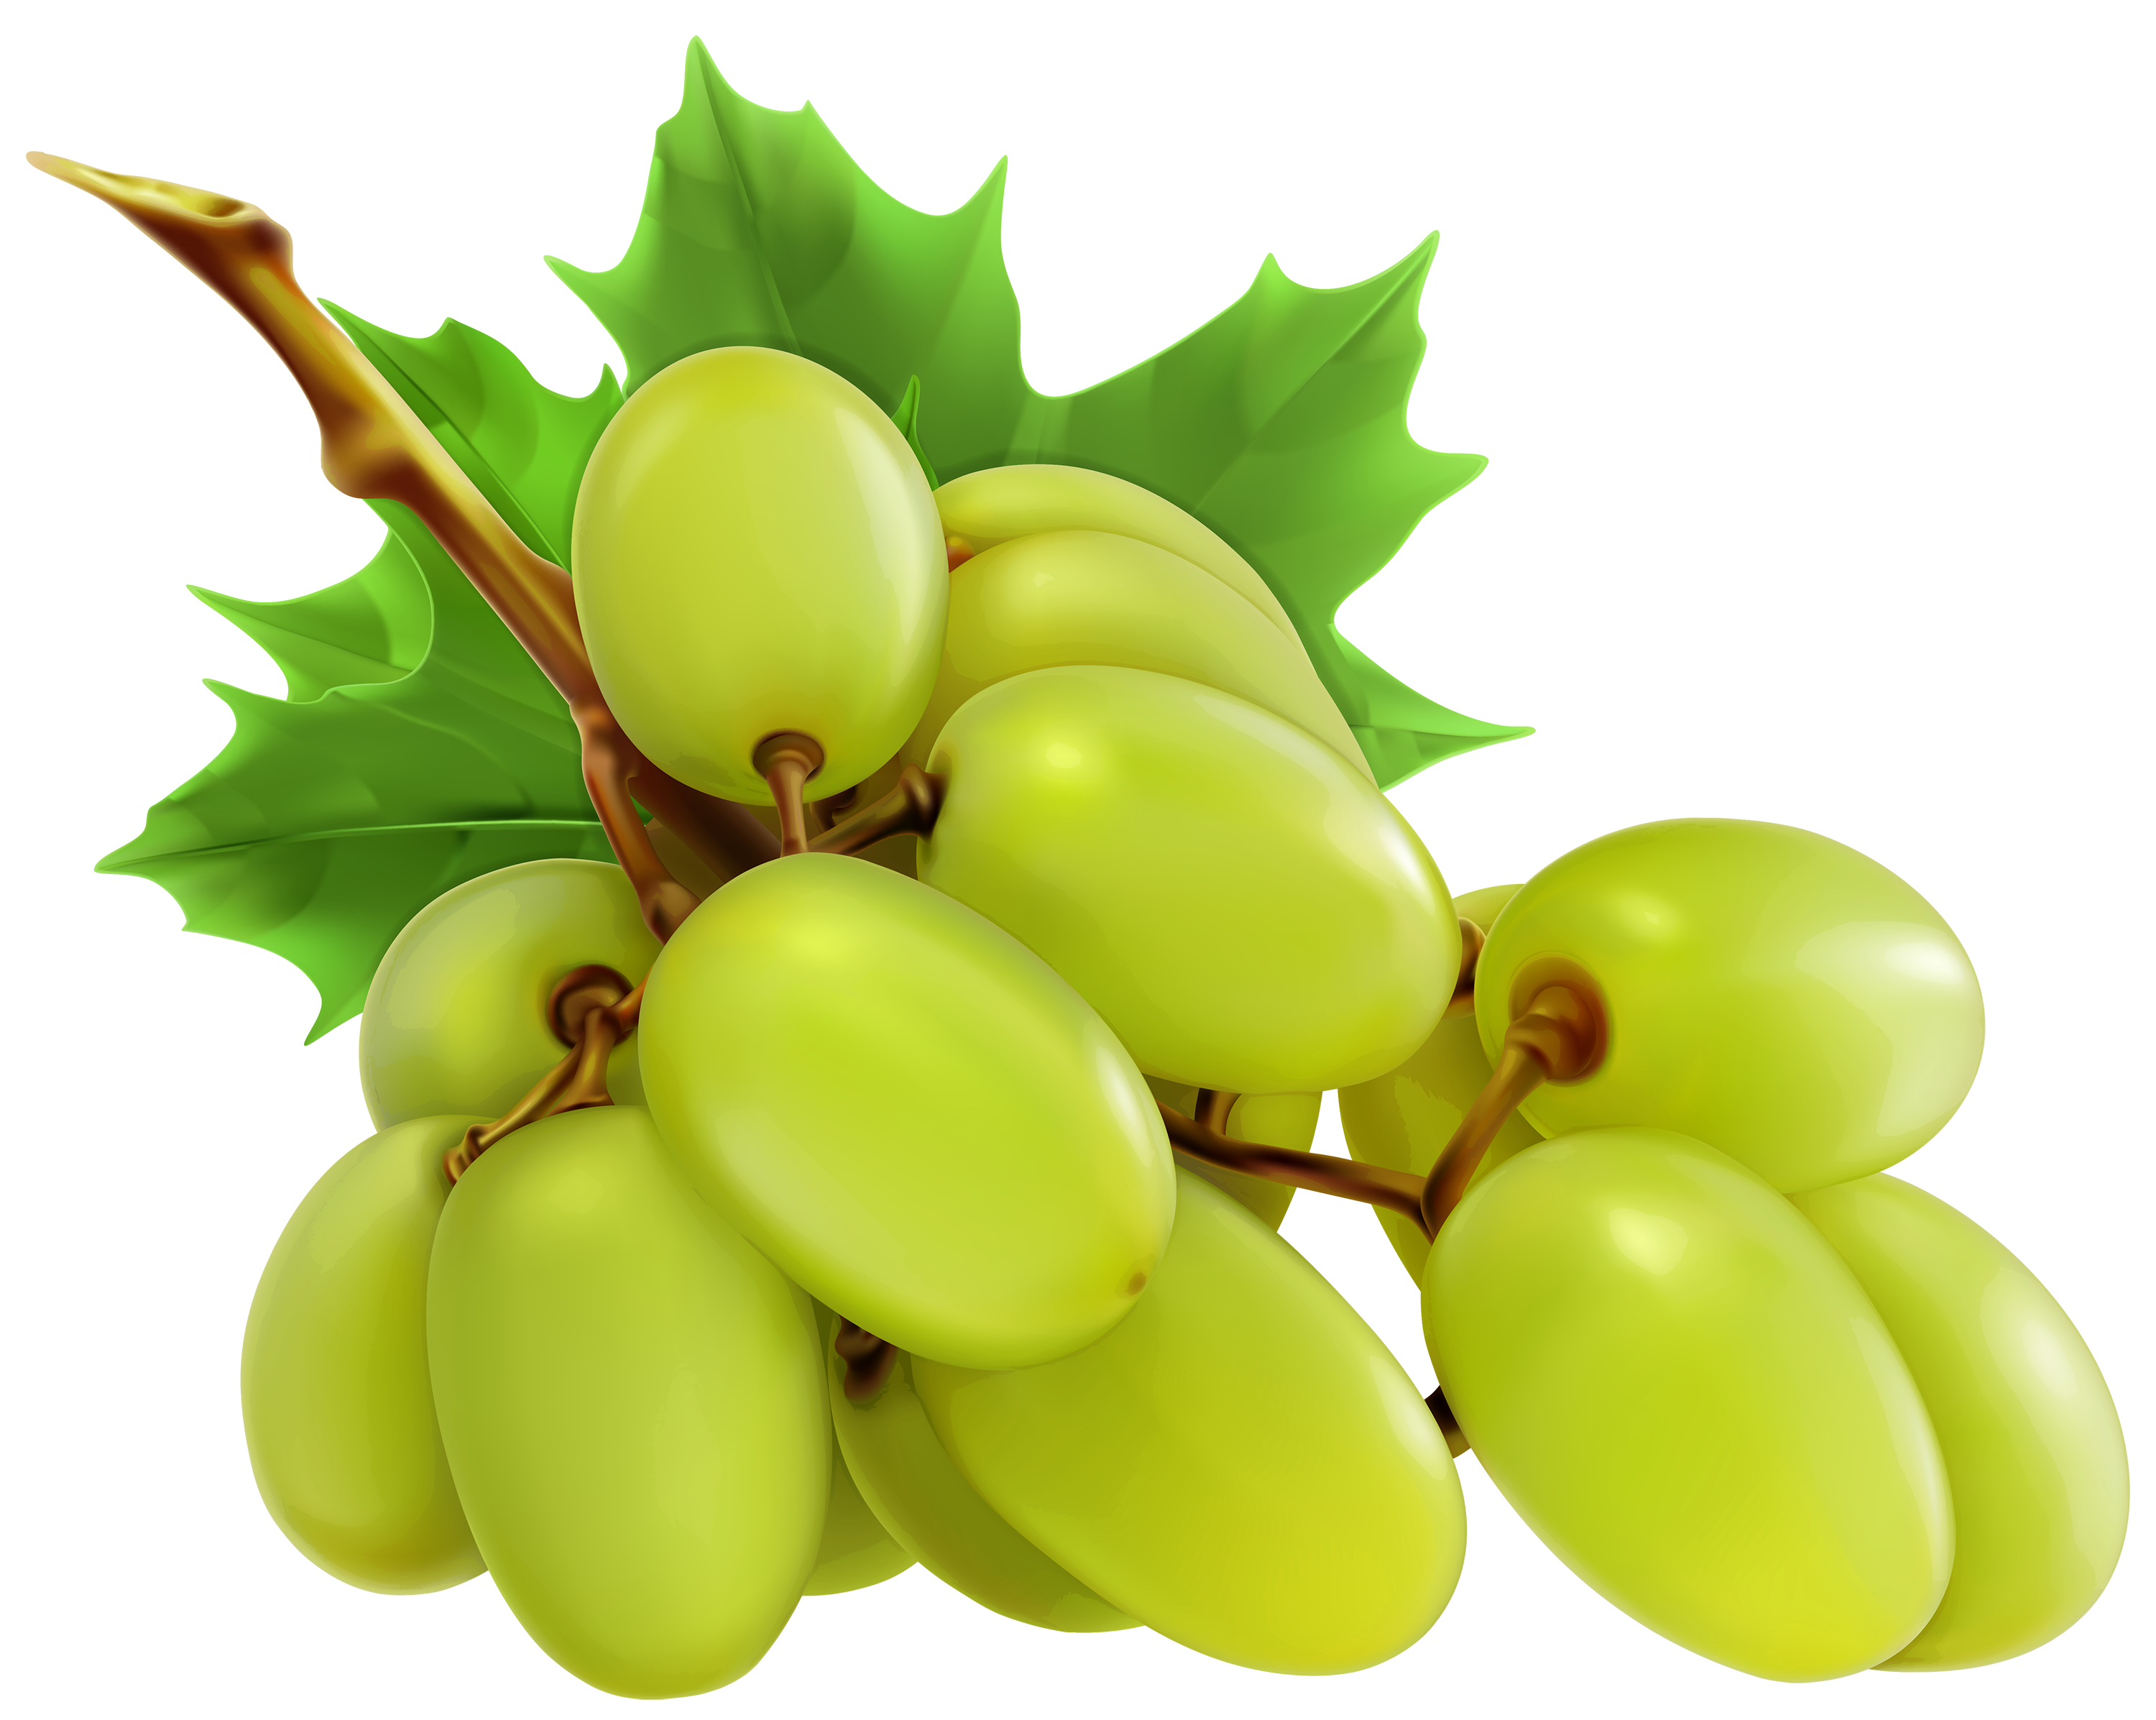 Grapes clipart free clip art image 2.